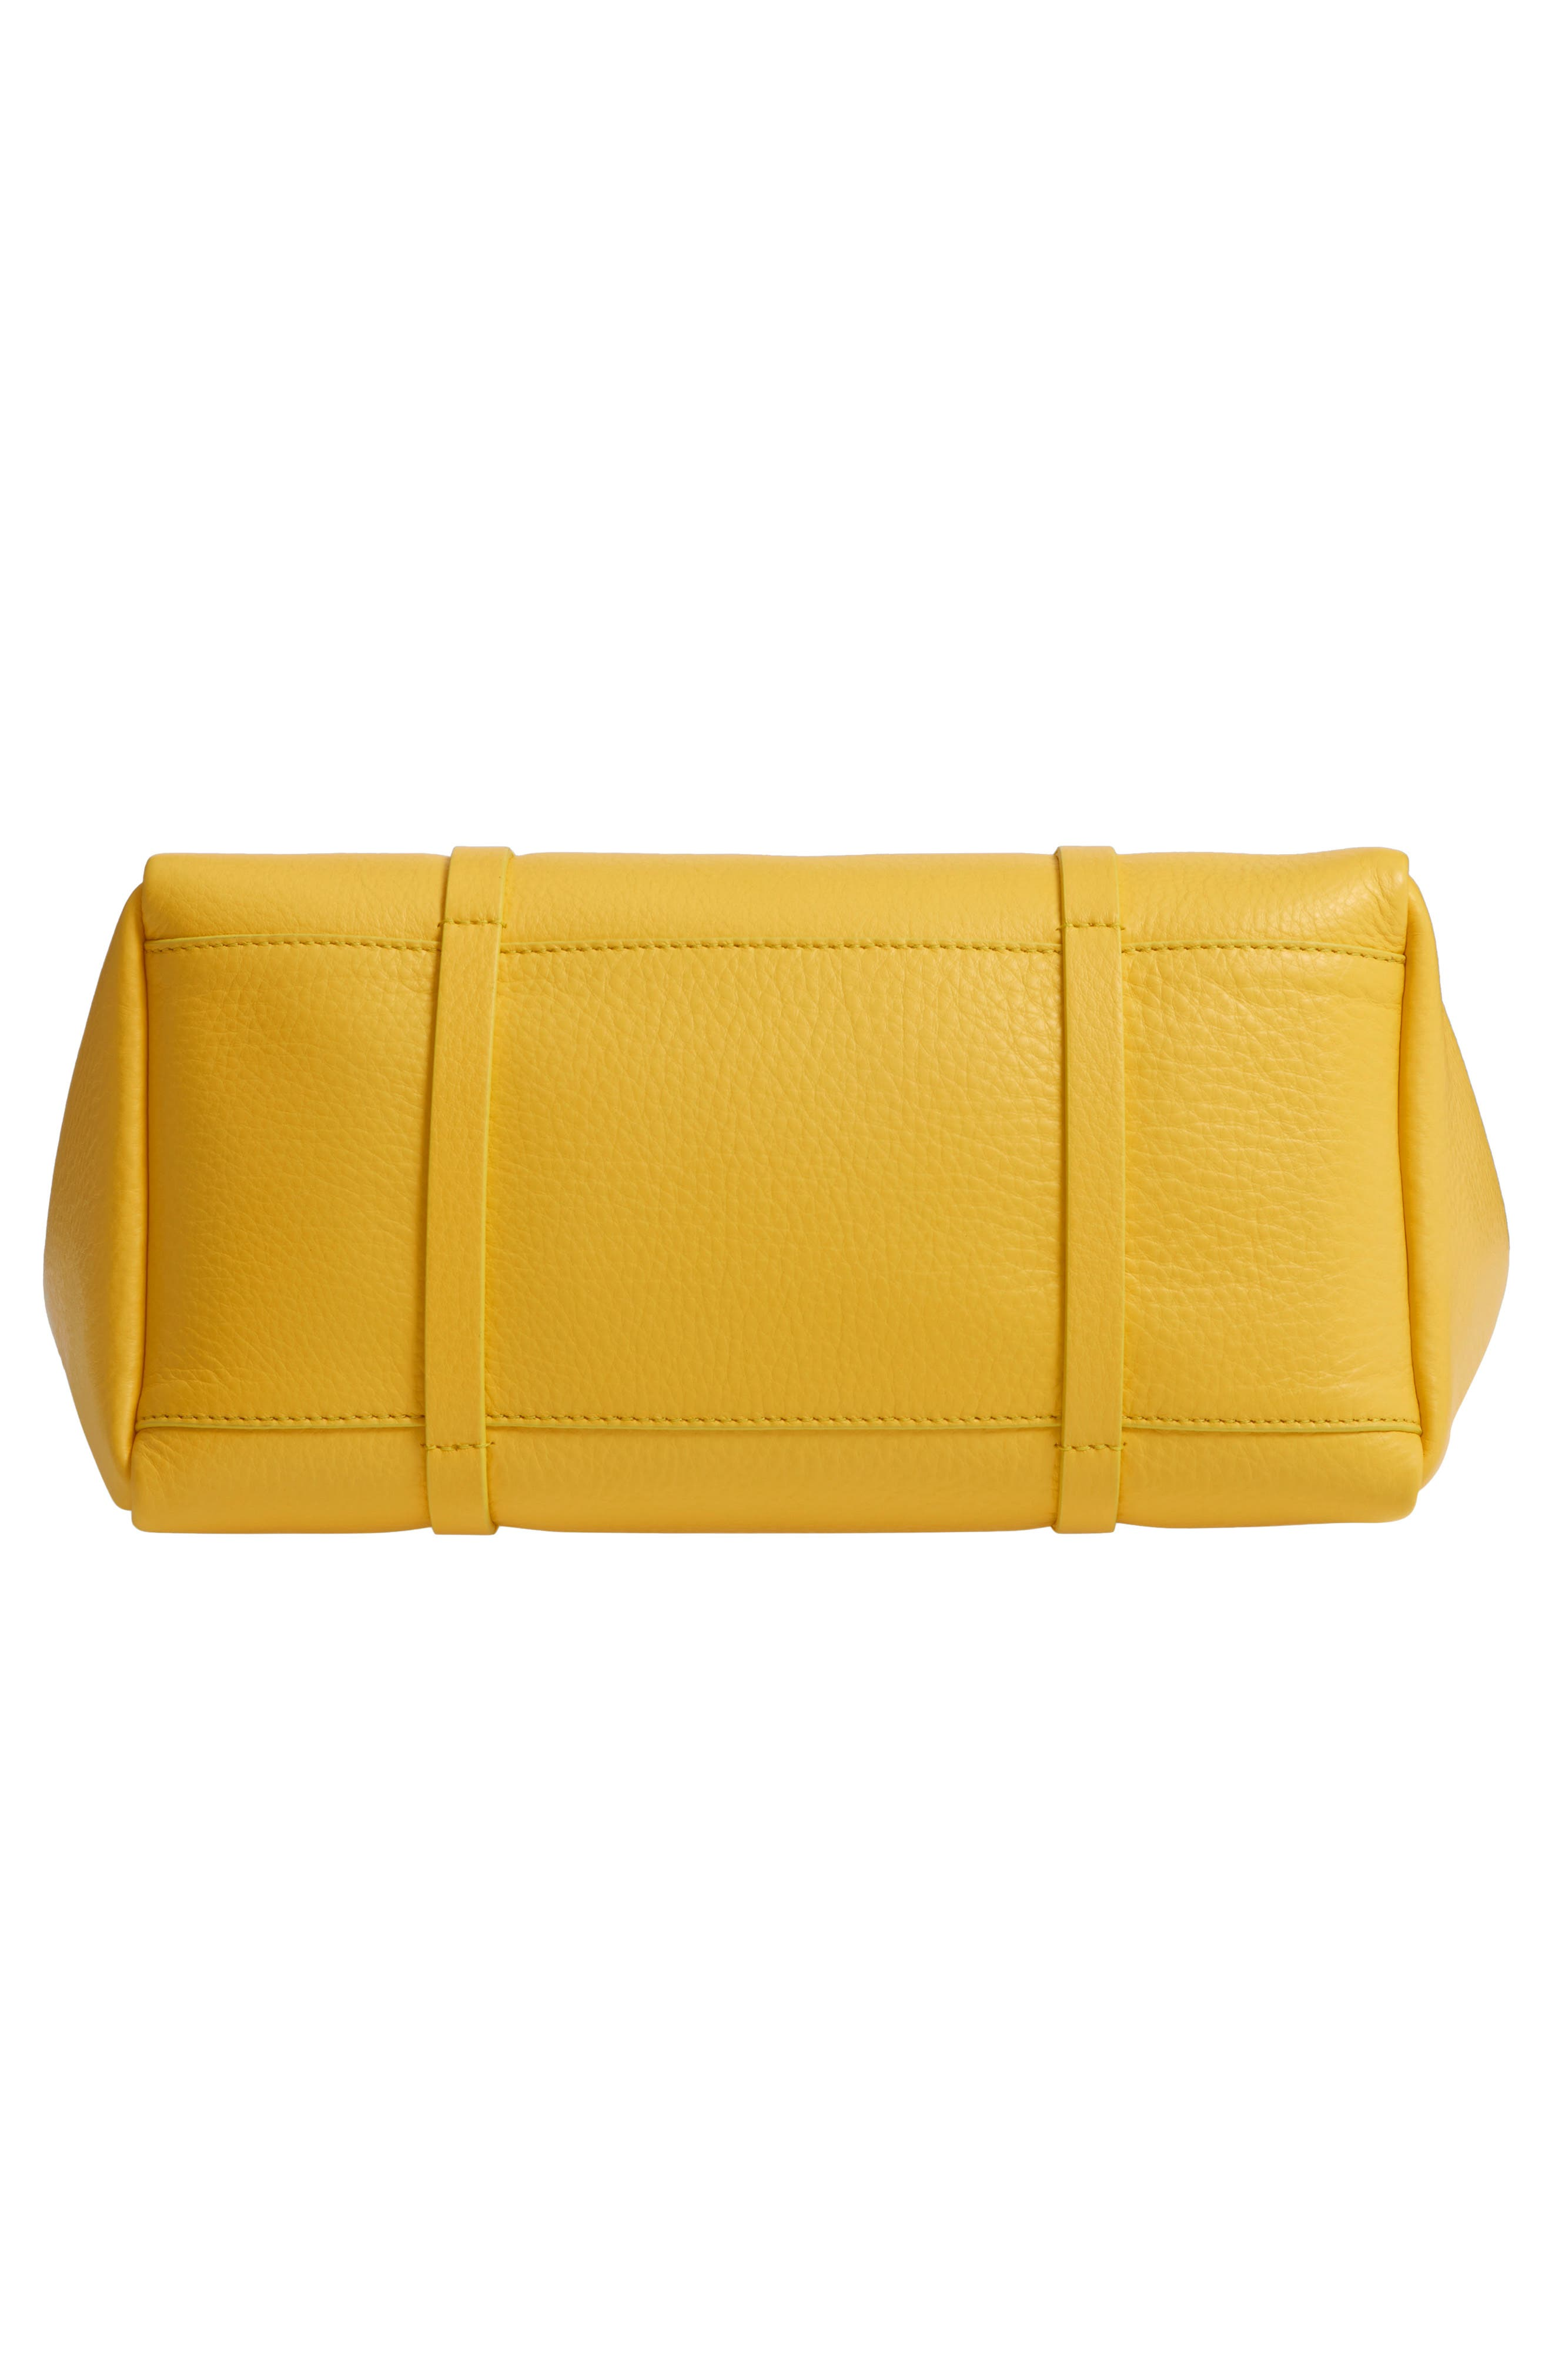 Small Everyday Calfskin Tote,                             Alternate thumbnail 6, color,                             YELLOW/ NOIR